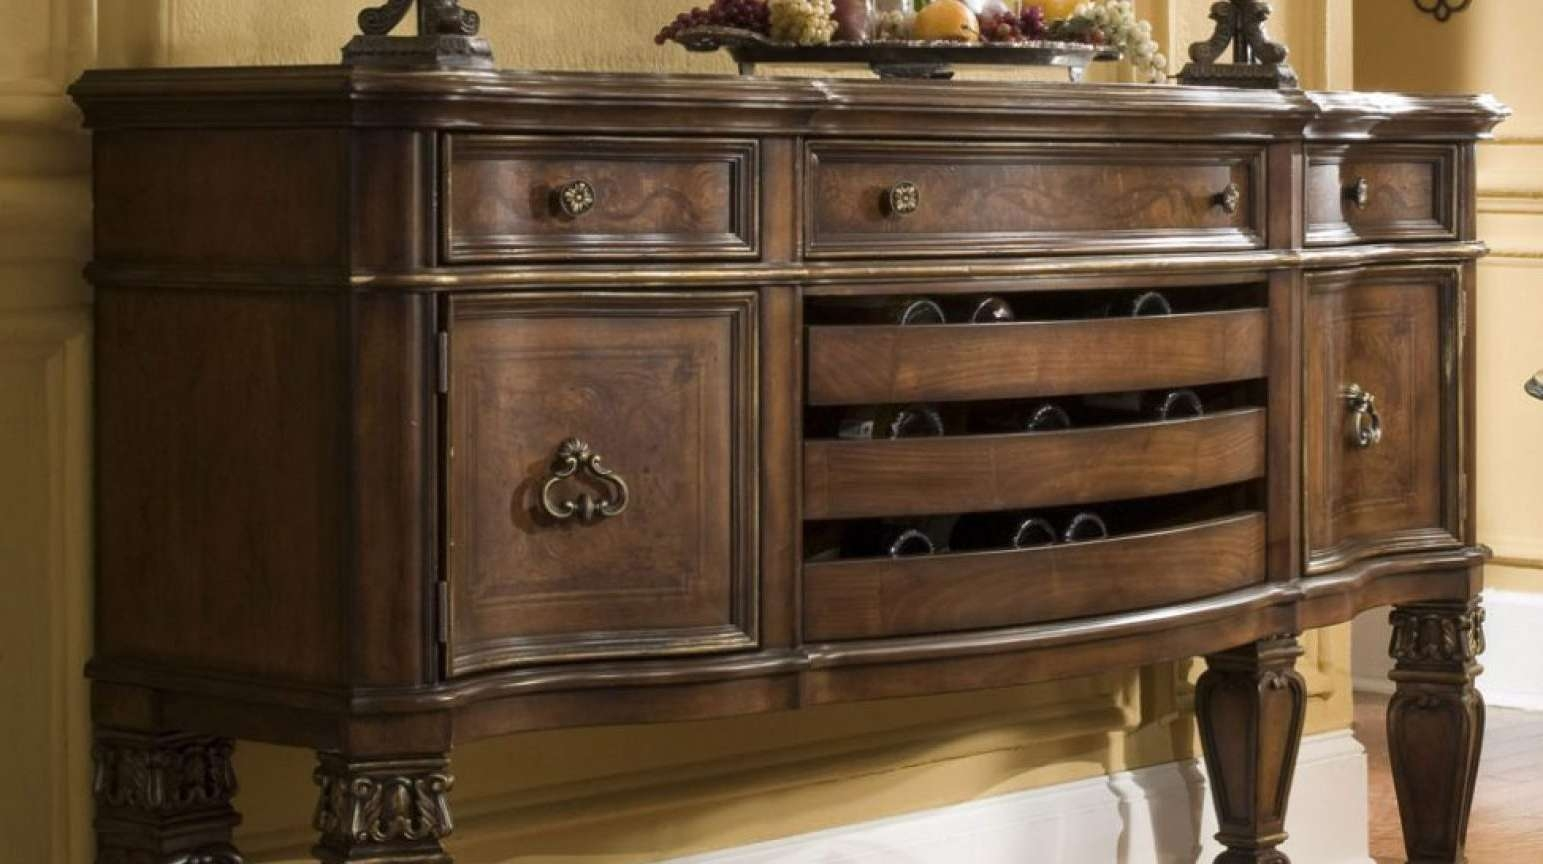 Sideboard : Farmhouse Sideboards Shocking Farmhouse Decor Within Farmhouse Sideboards (View 12 of 20)